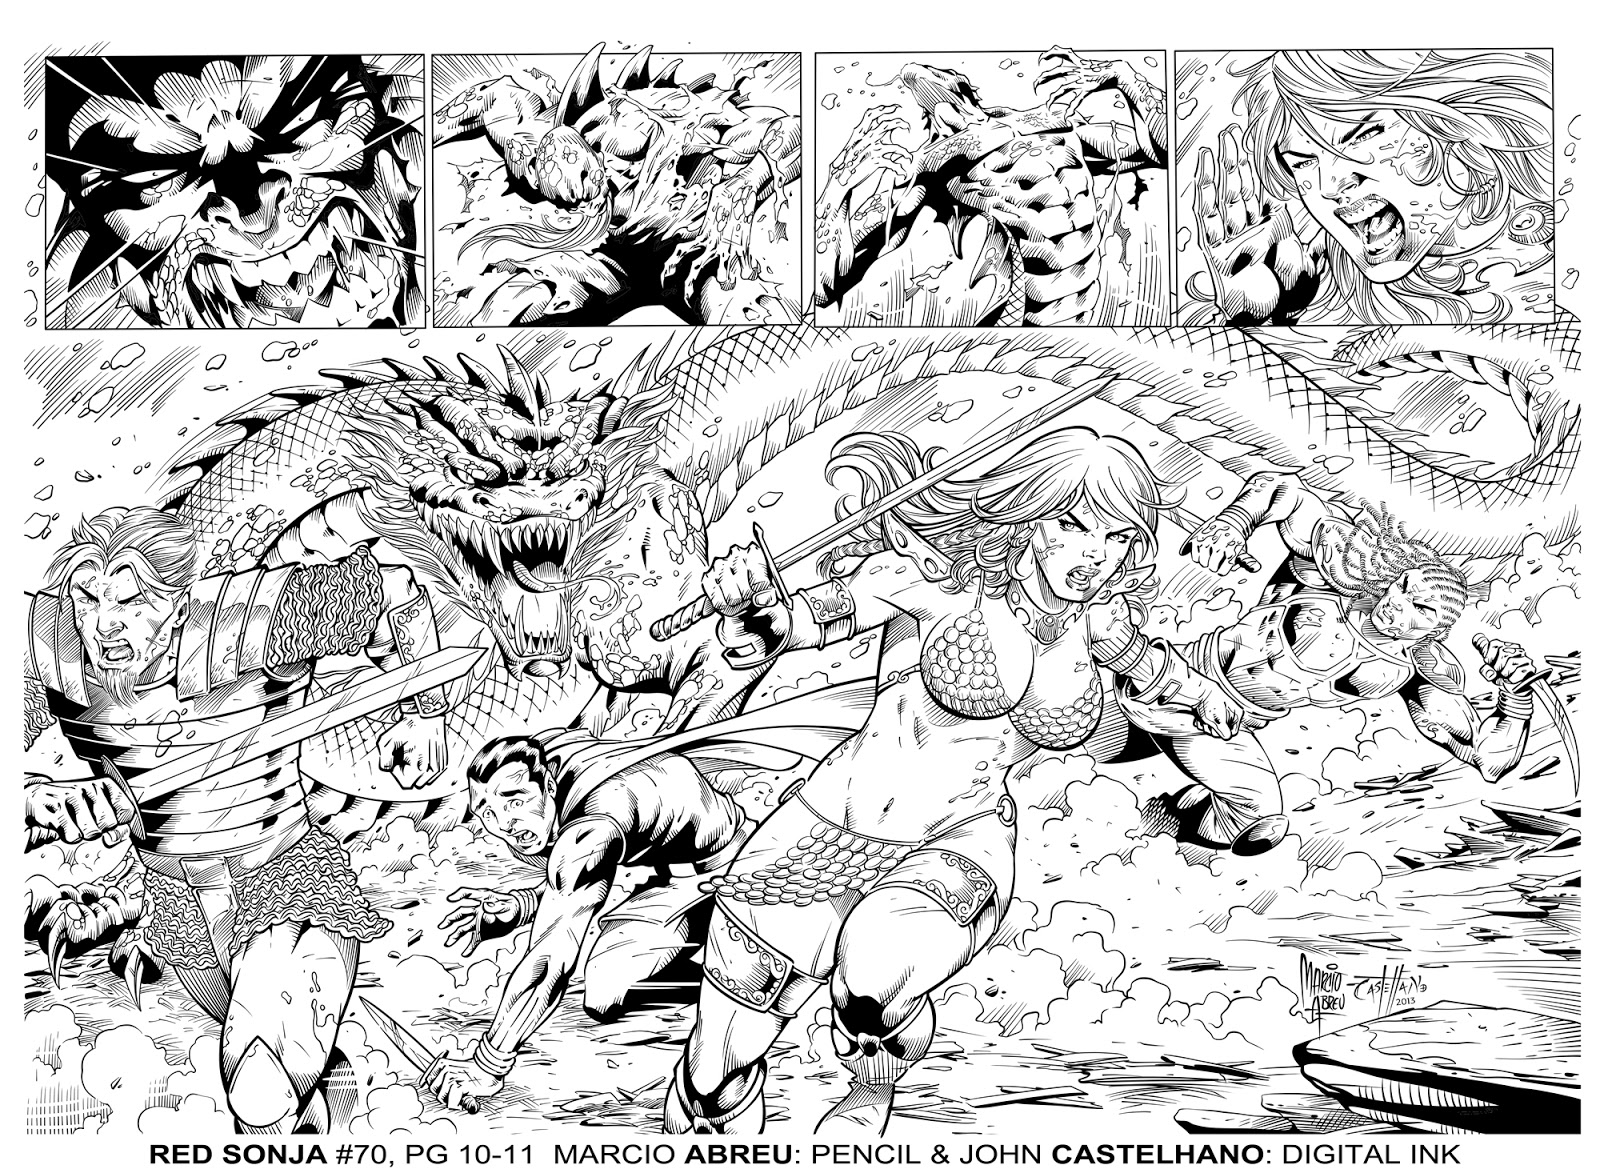 Red Sonja 70 Pg 10 - 11 by  Pencil: Marcio Abreu -  Digital Ink: Mine (John Castelhano)